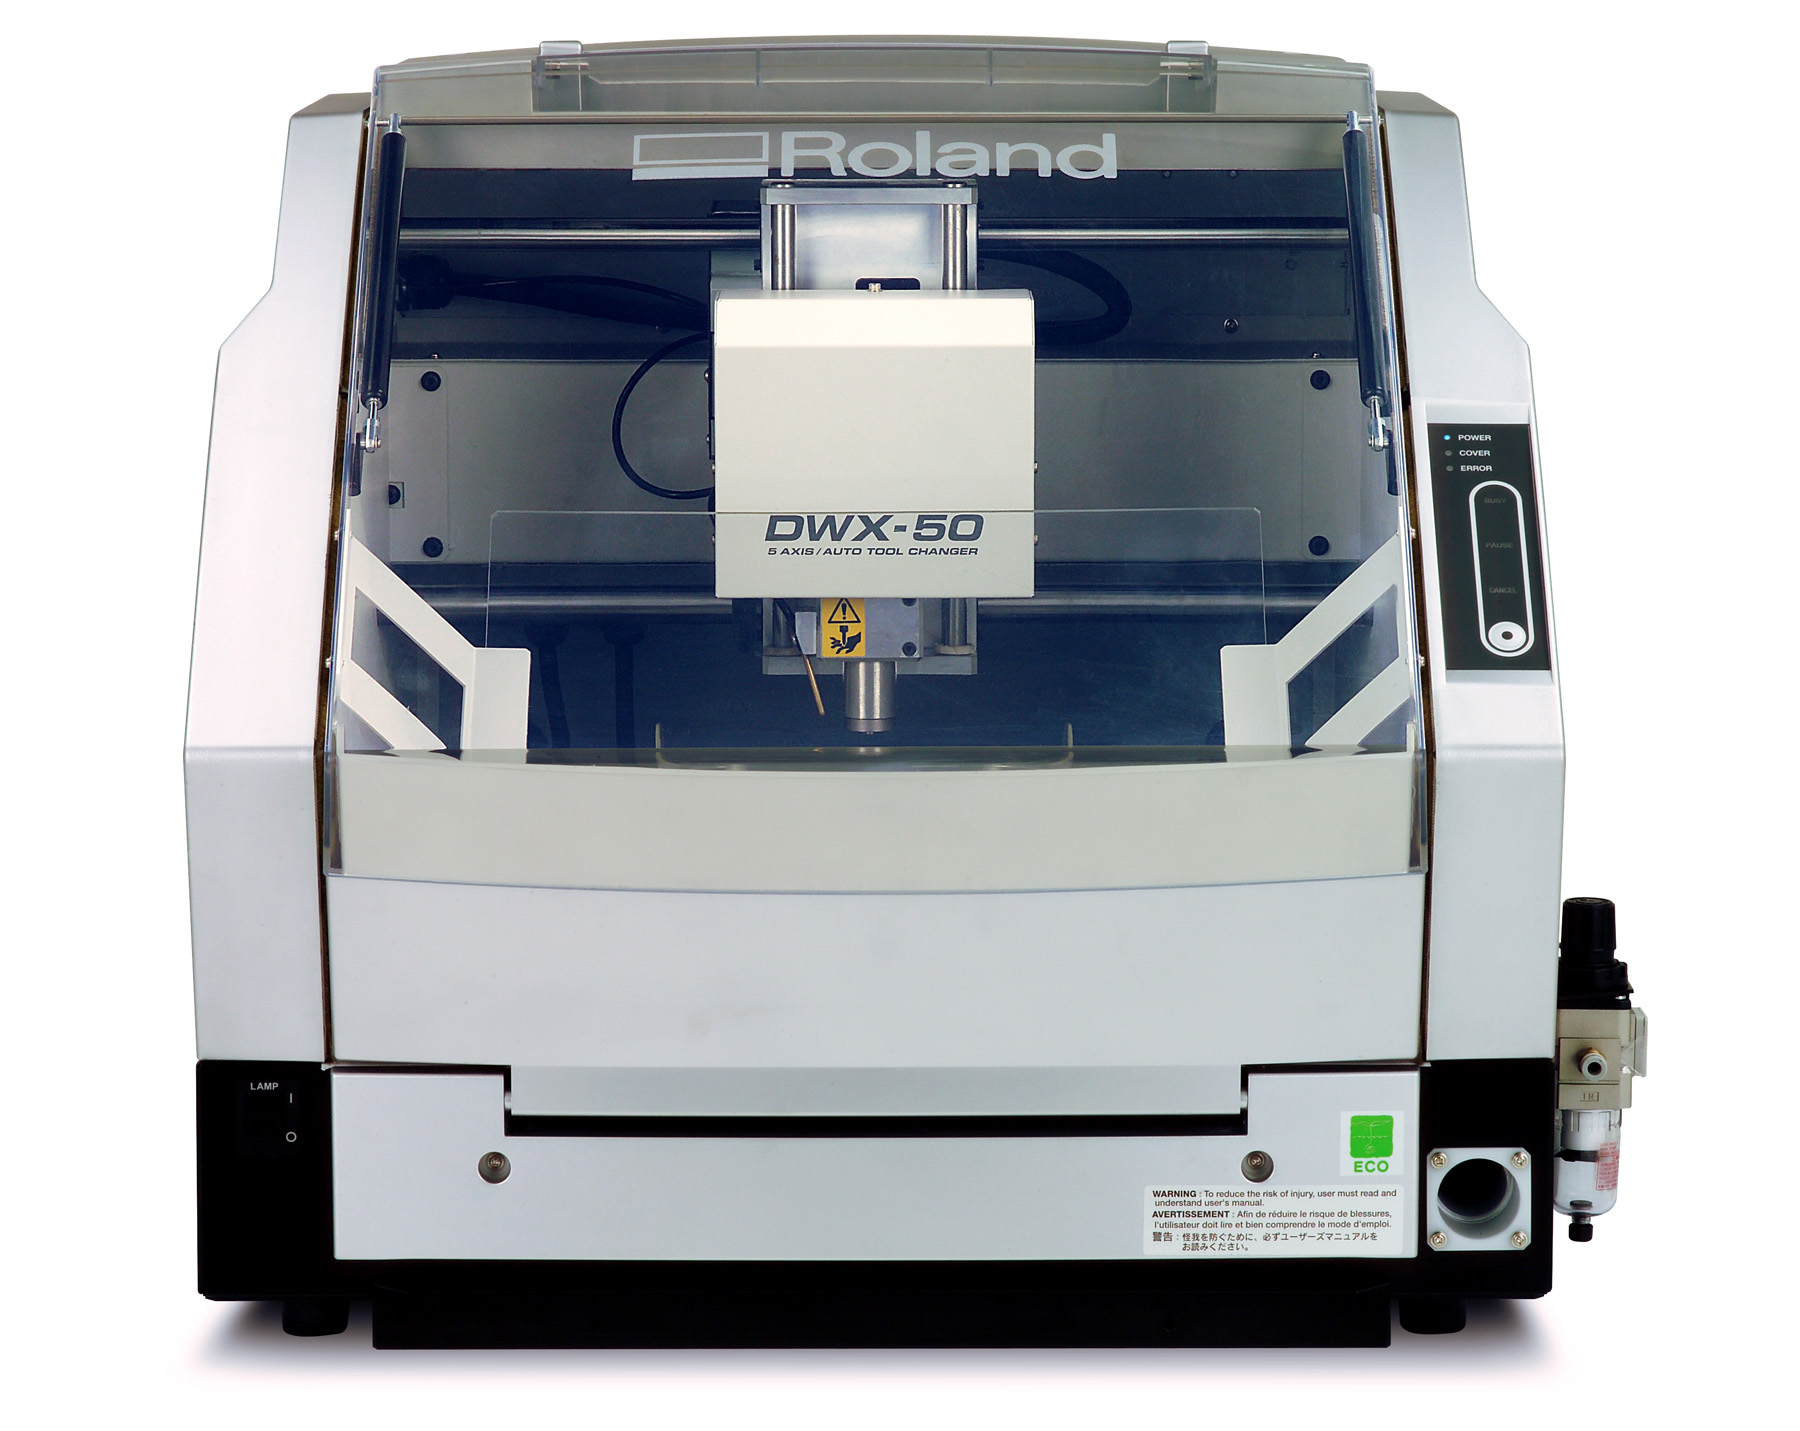 Roland Dwx 50 Dental Mill Approved For 3m Espe Lava Tm